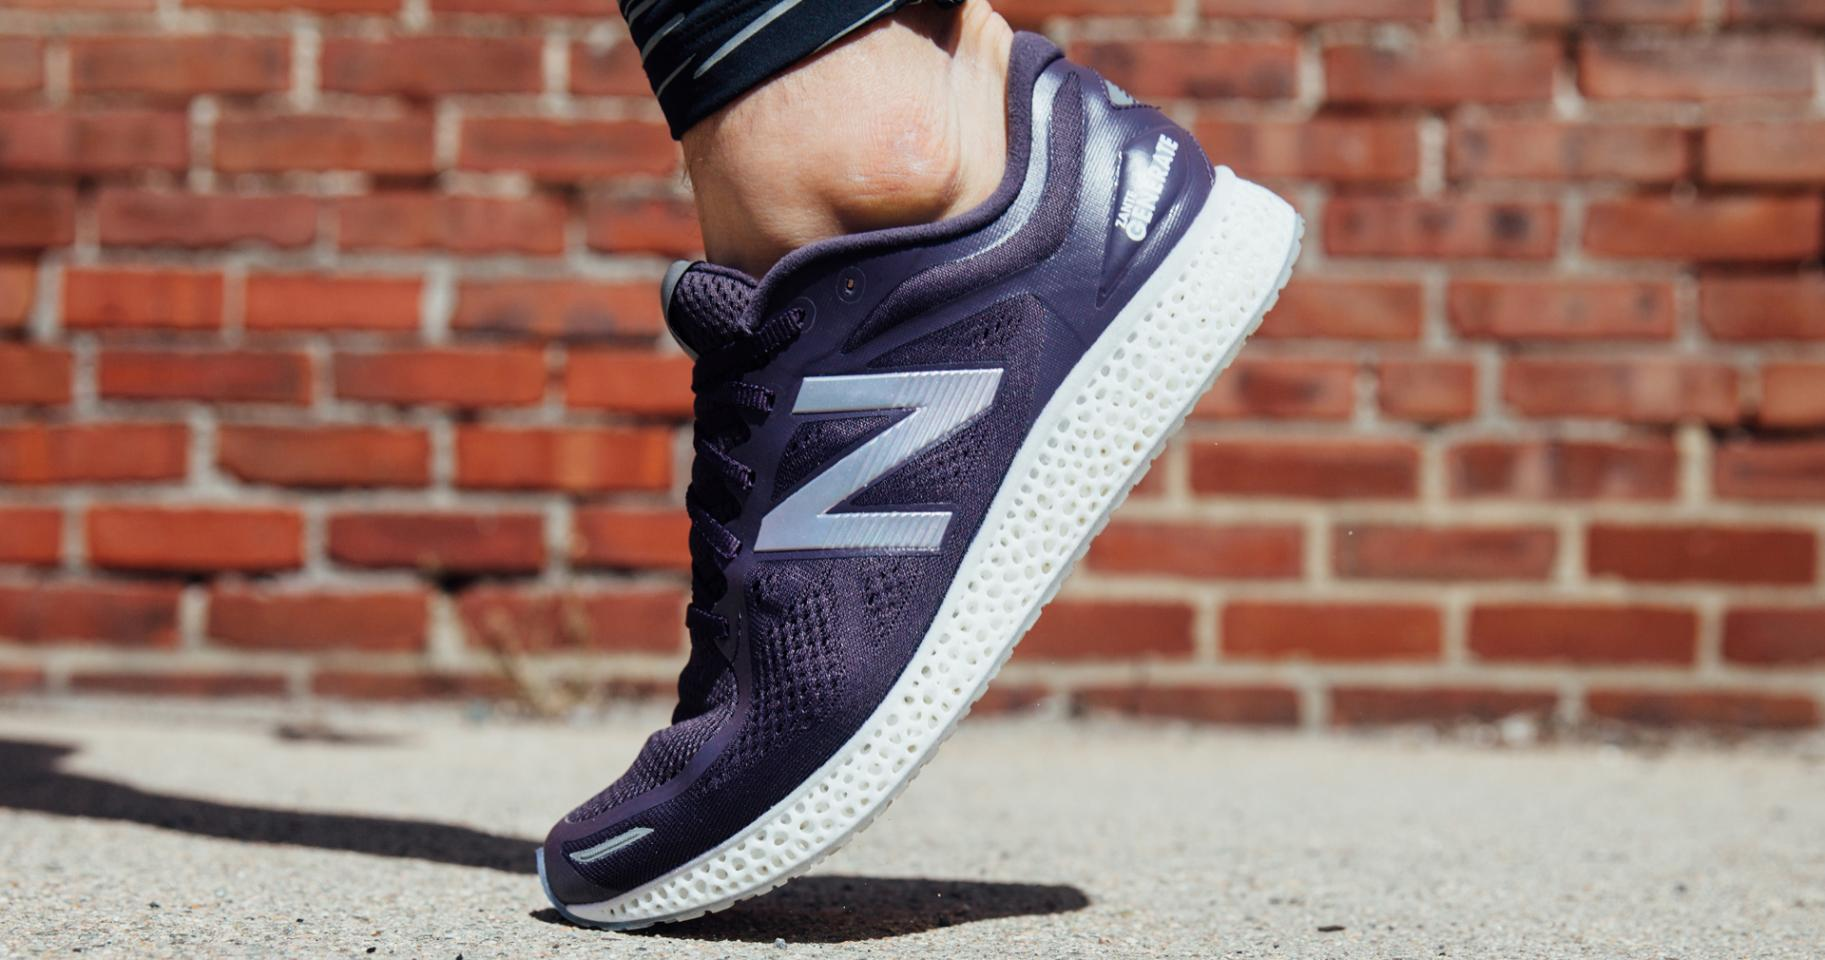 New Balance Installs Russell Finex Compact Sieve To 3D Print Footwear | All3DP